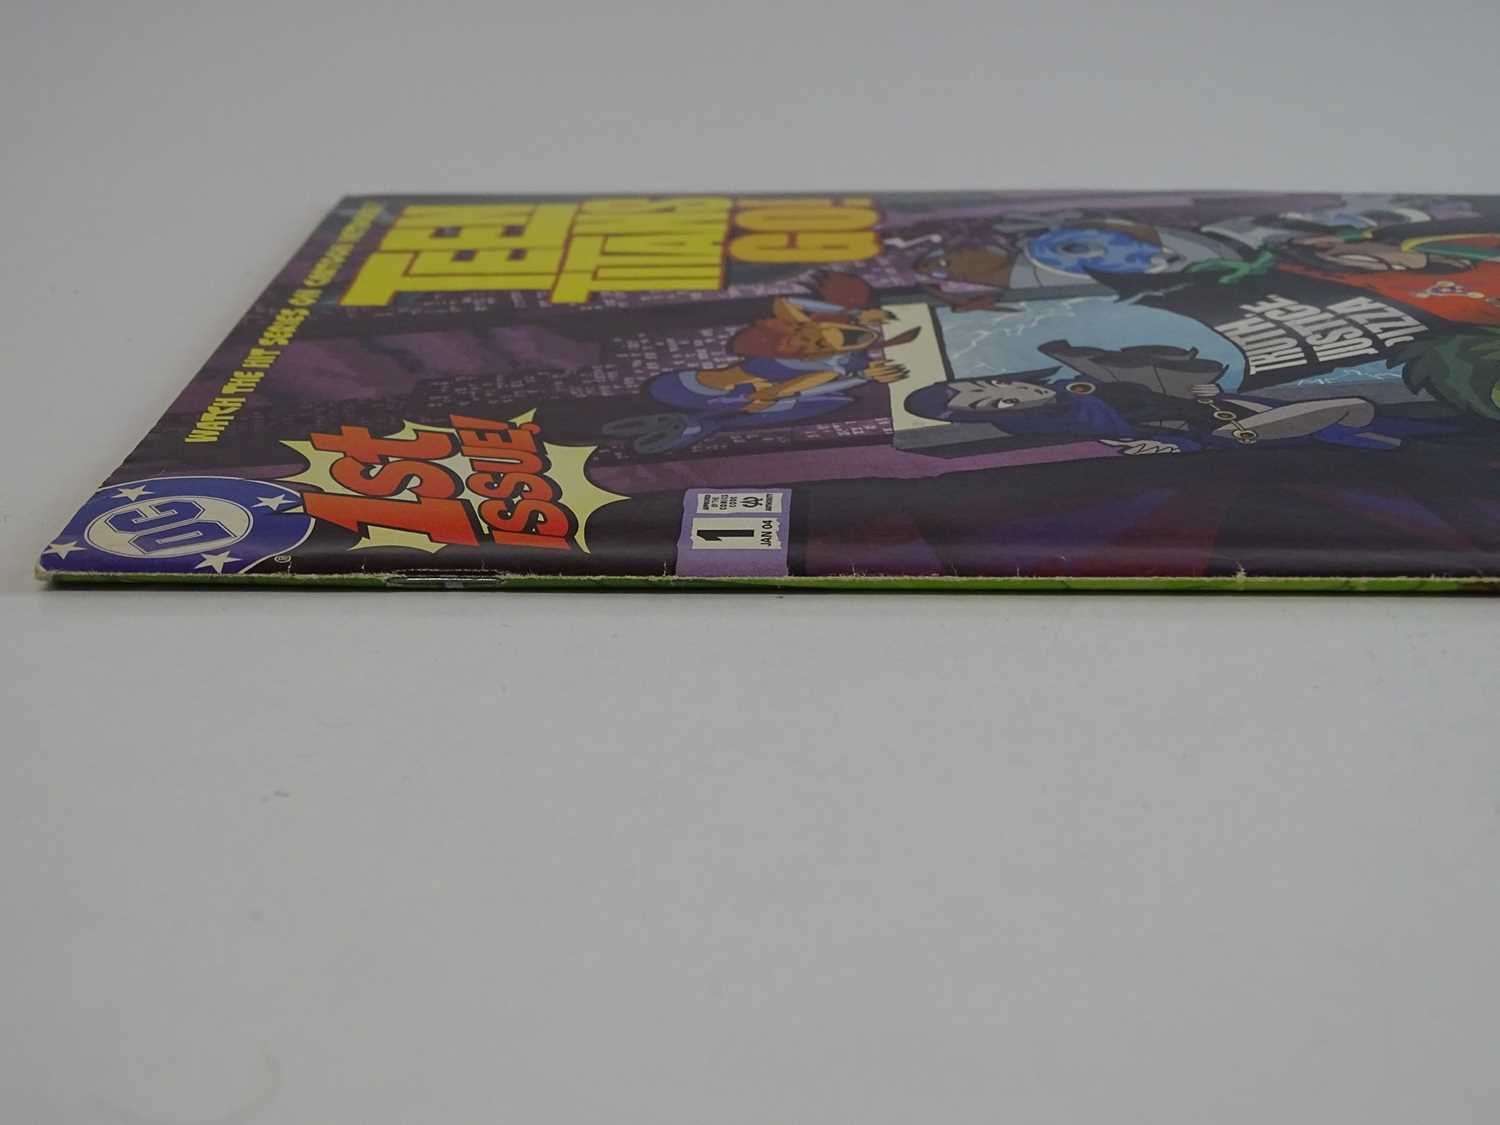 TEEN TITANS GO #1 - (2004 - DC) - First Printing - RARE - Comic book series based on the hit - Image 8 of 9